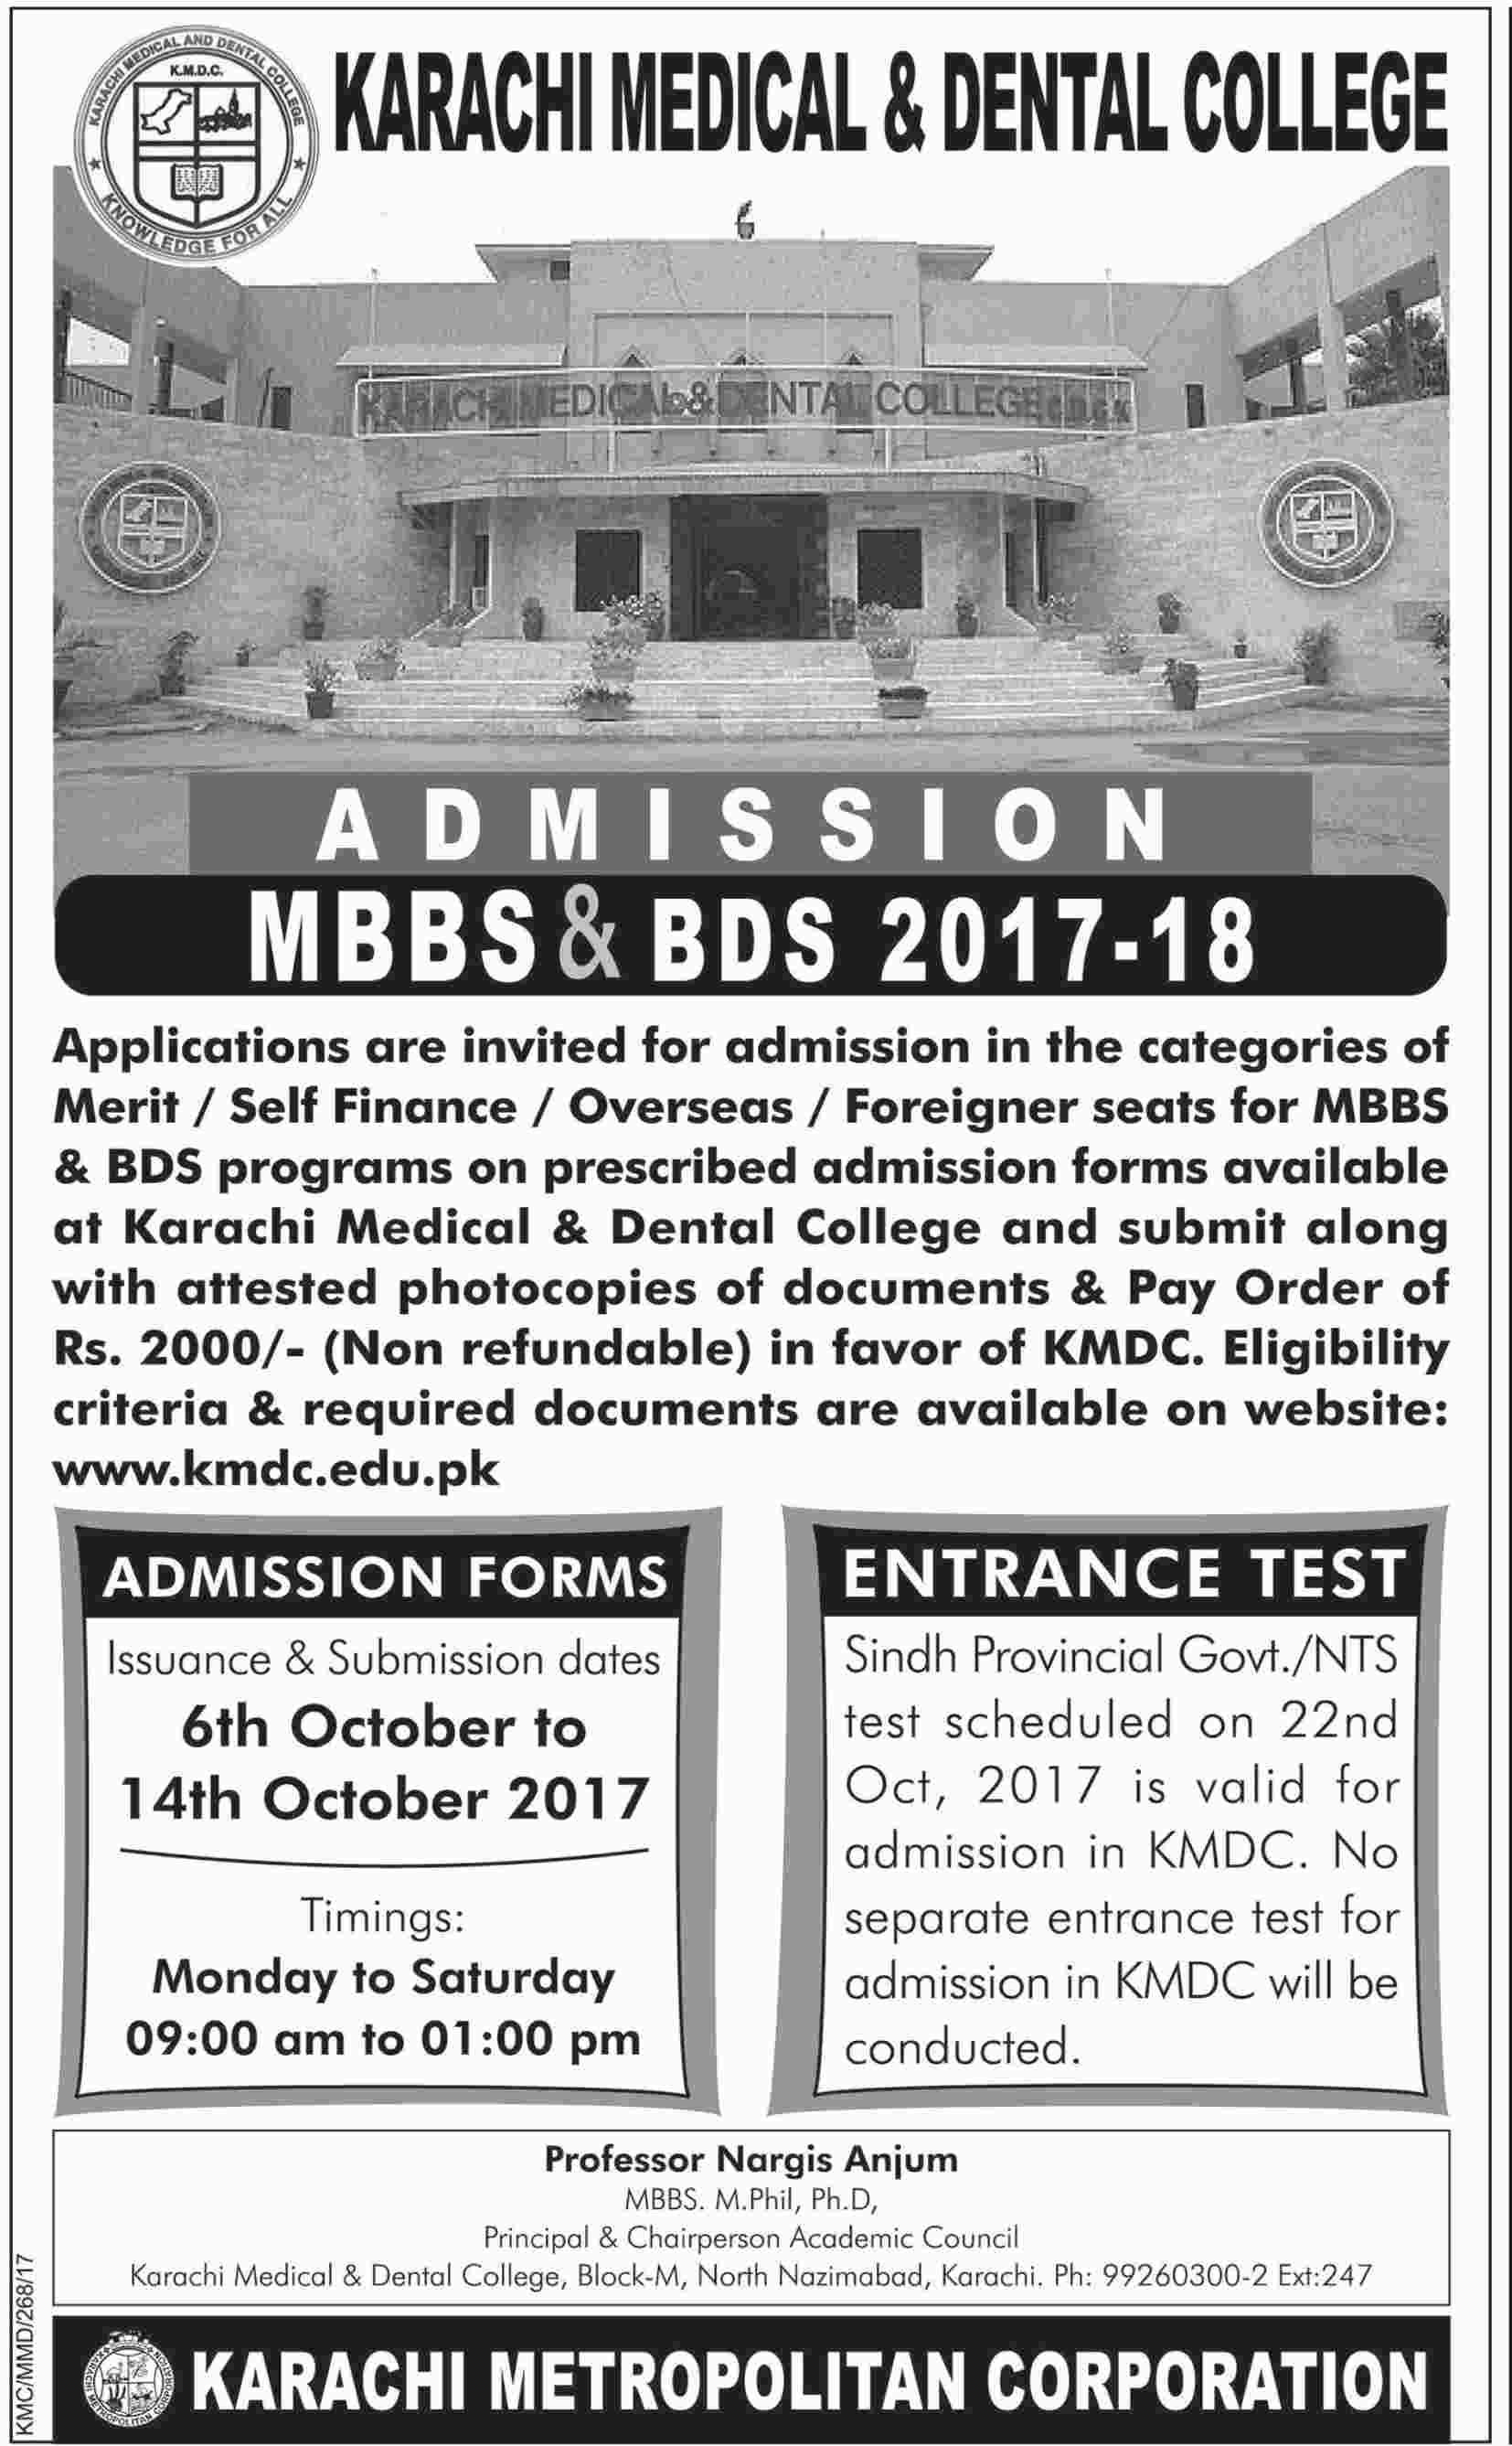 KMDC MBBS & BDS Admissions 2017